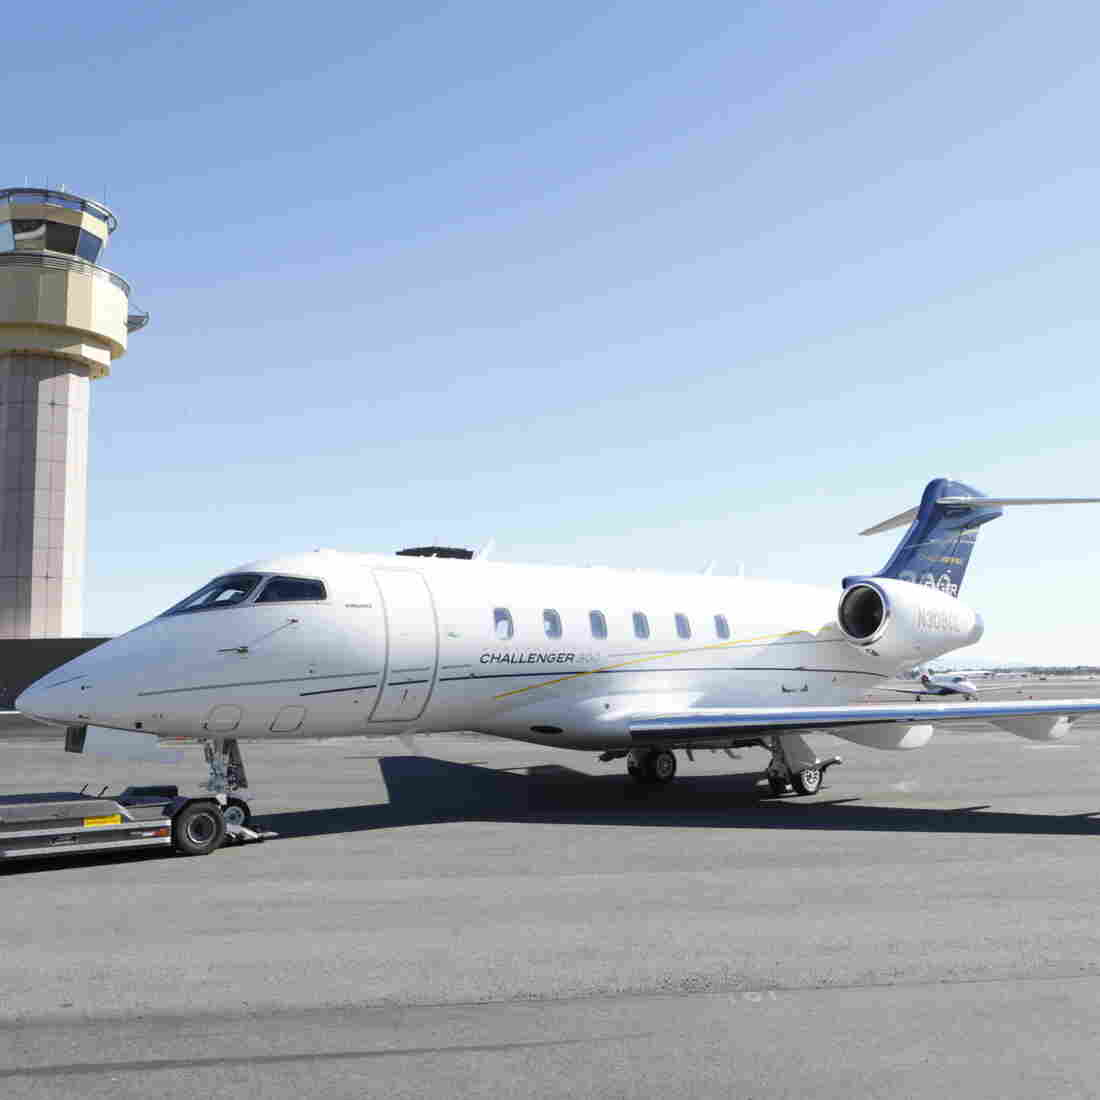 The Bombardier Challenger 300 is one of the most popular midsize business jets in production. Canada-based Bombardier has boomed in the two decades since the North American Free Trade Agreement was signed.